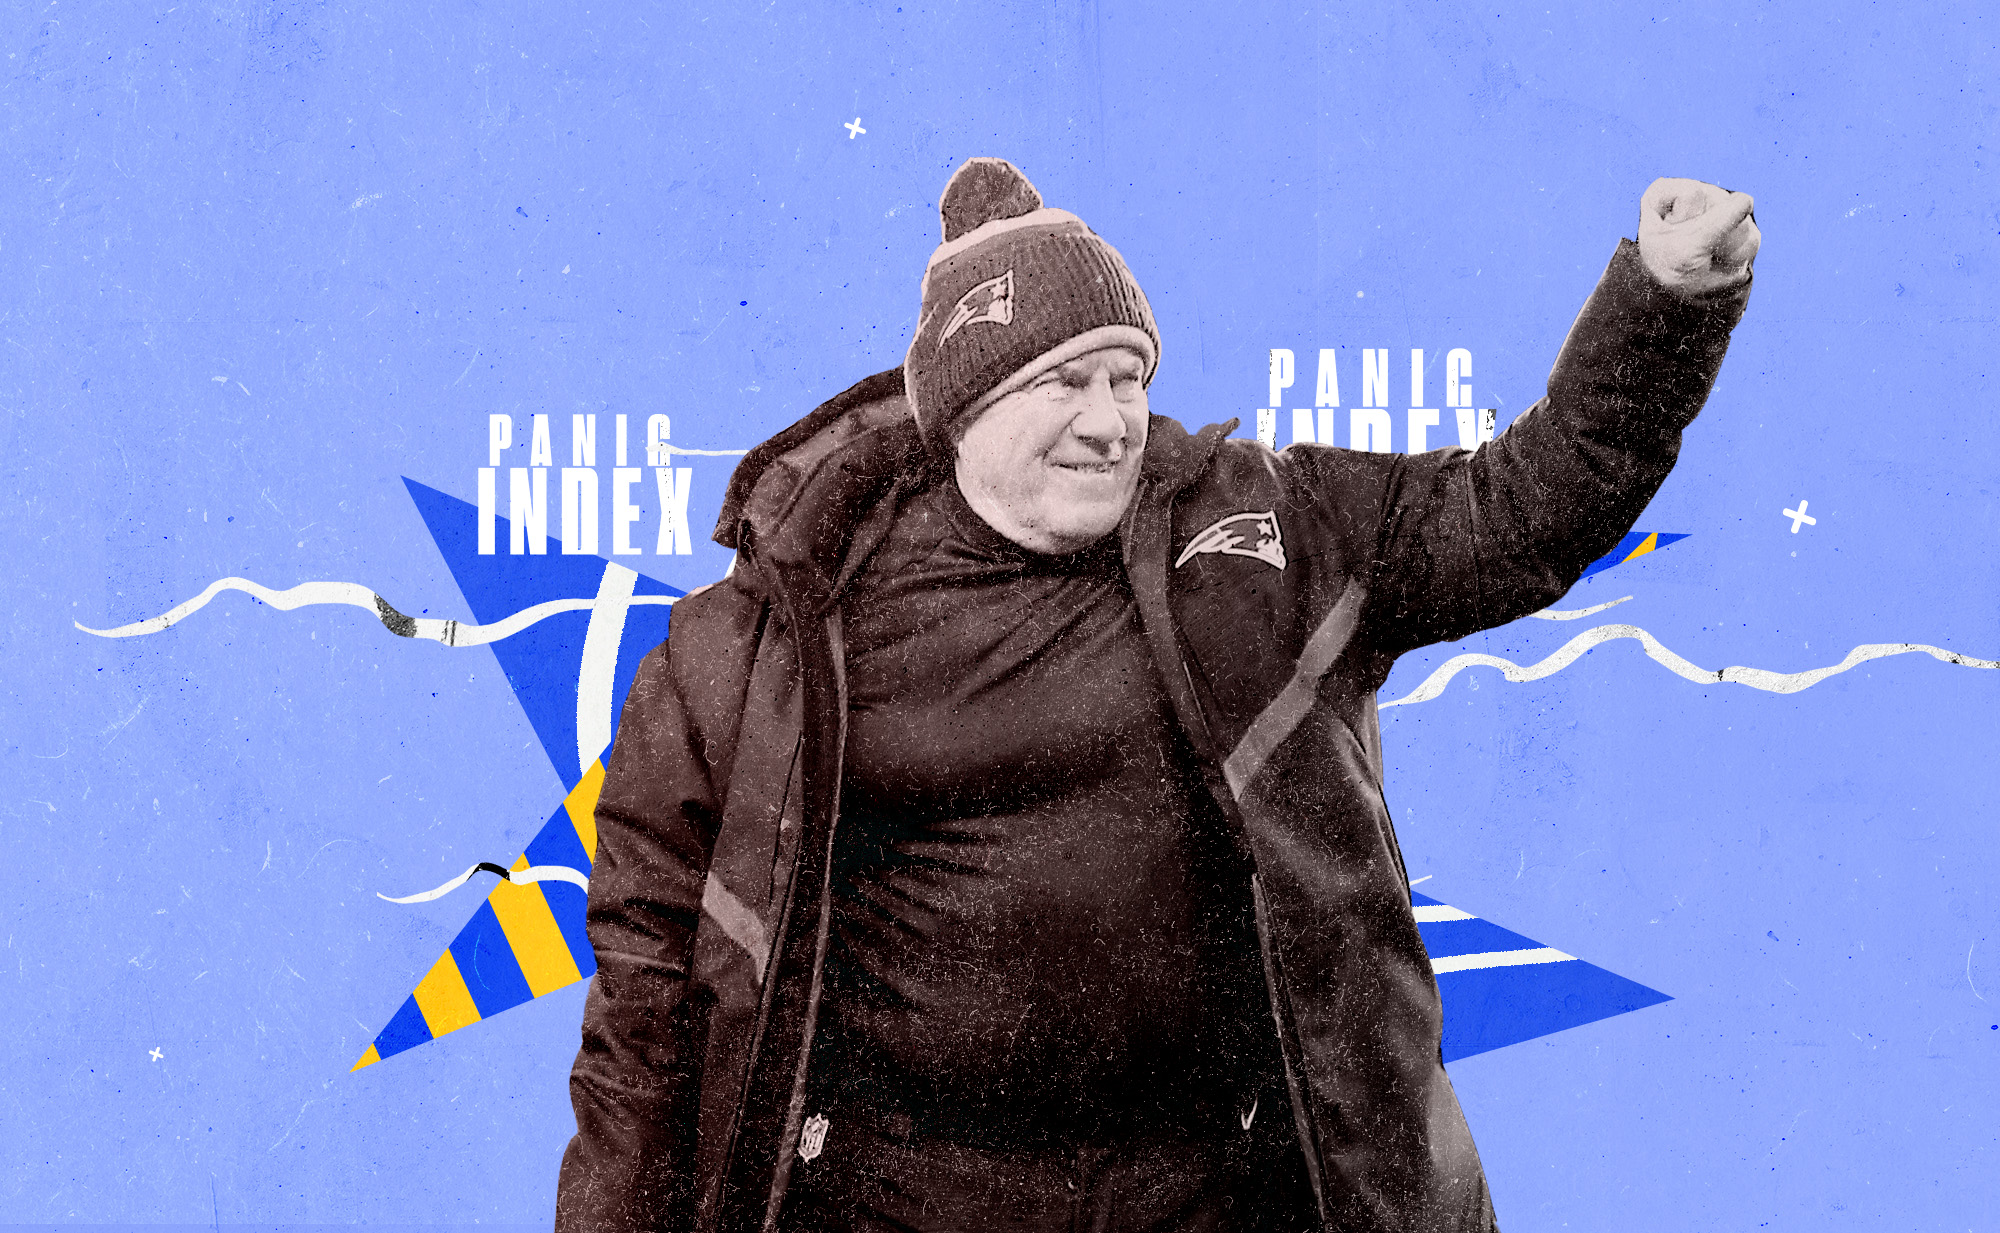 """Patriots coach Bill Belichick looks to his right and smiles with his right fist raised in the air, superimposed on a blue, white, and yellow background with the words """"PANIC INDEX"""""""